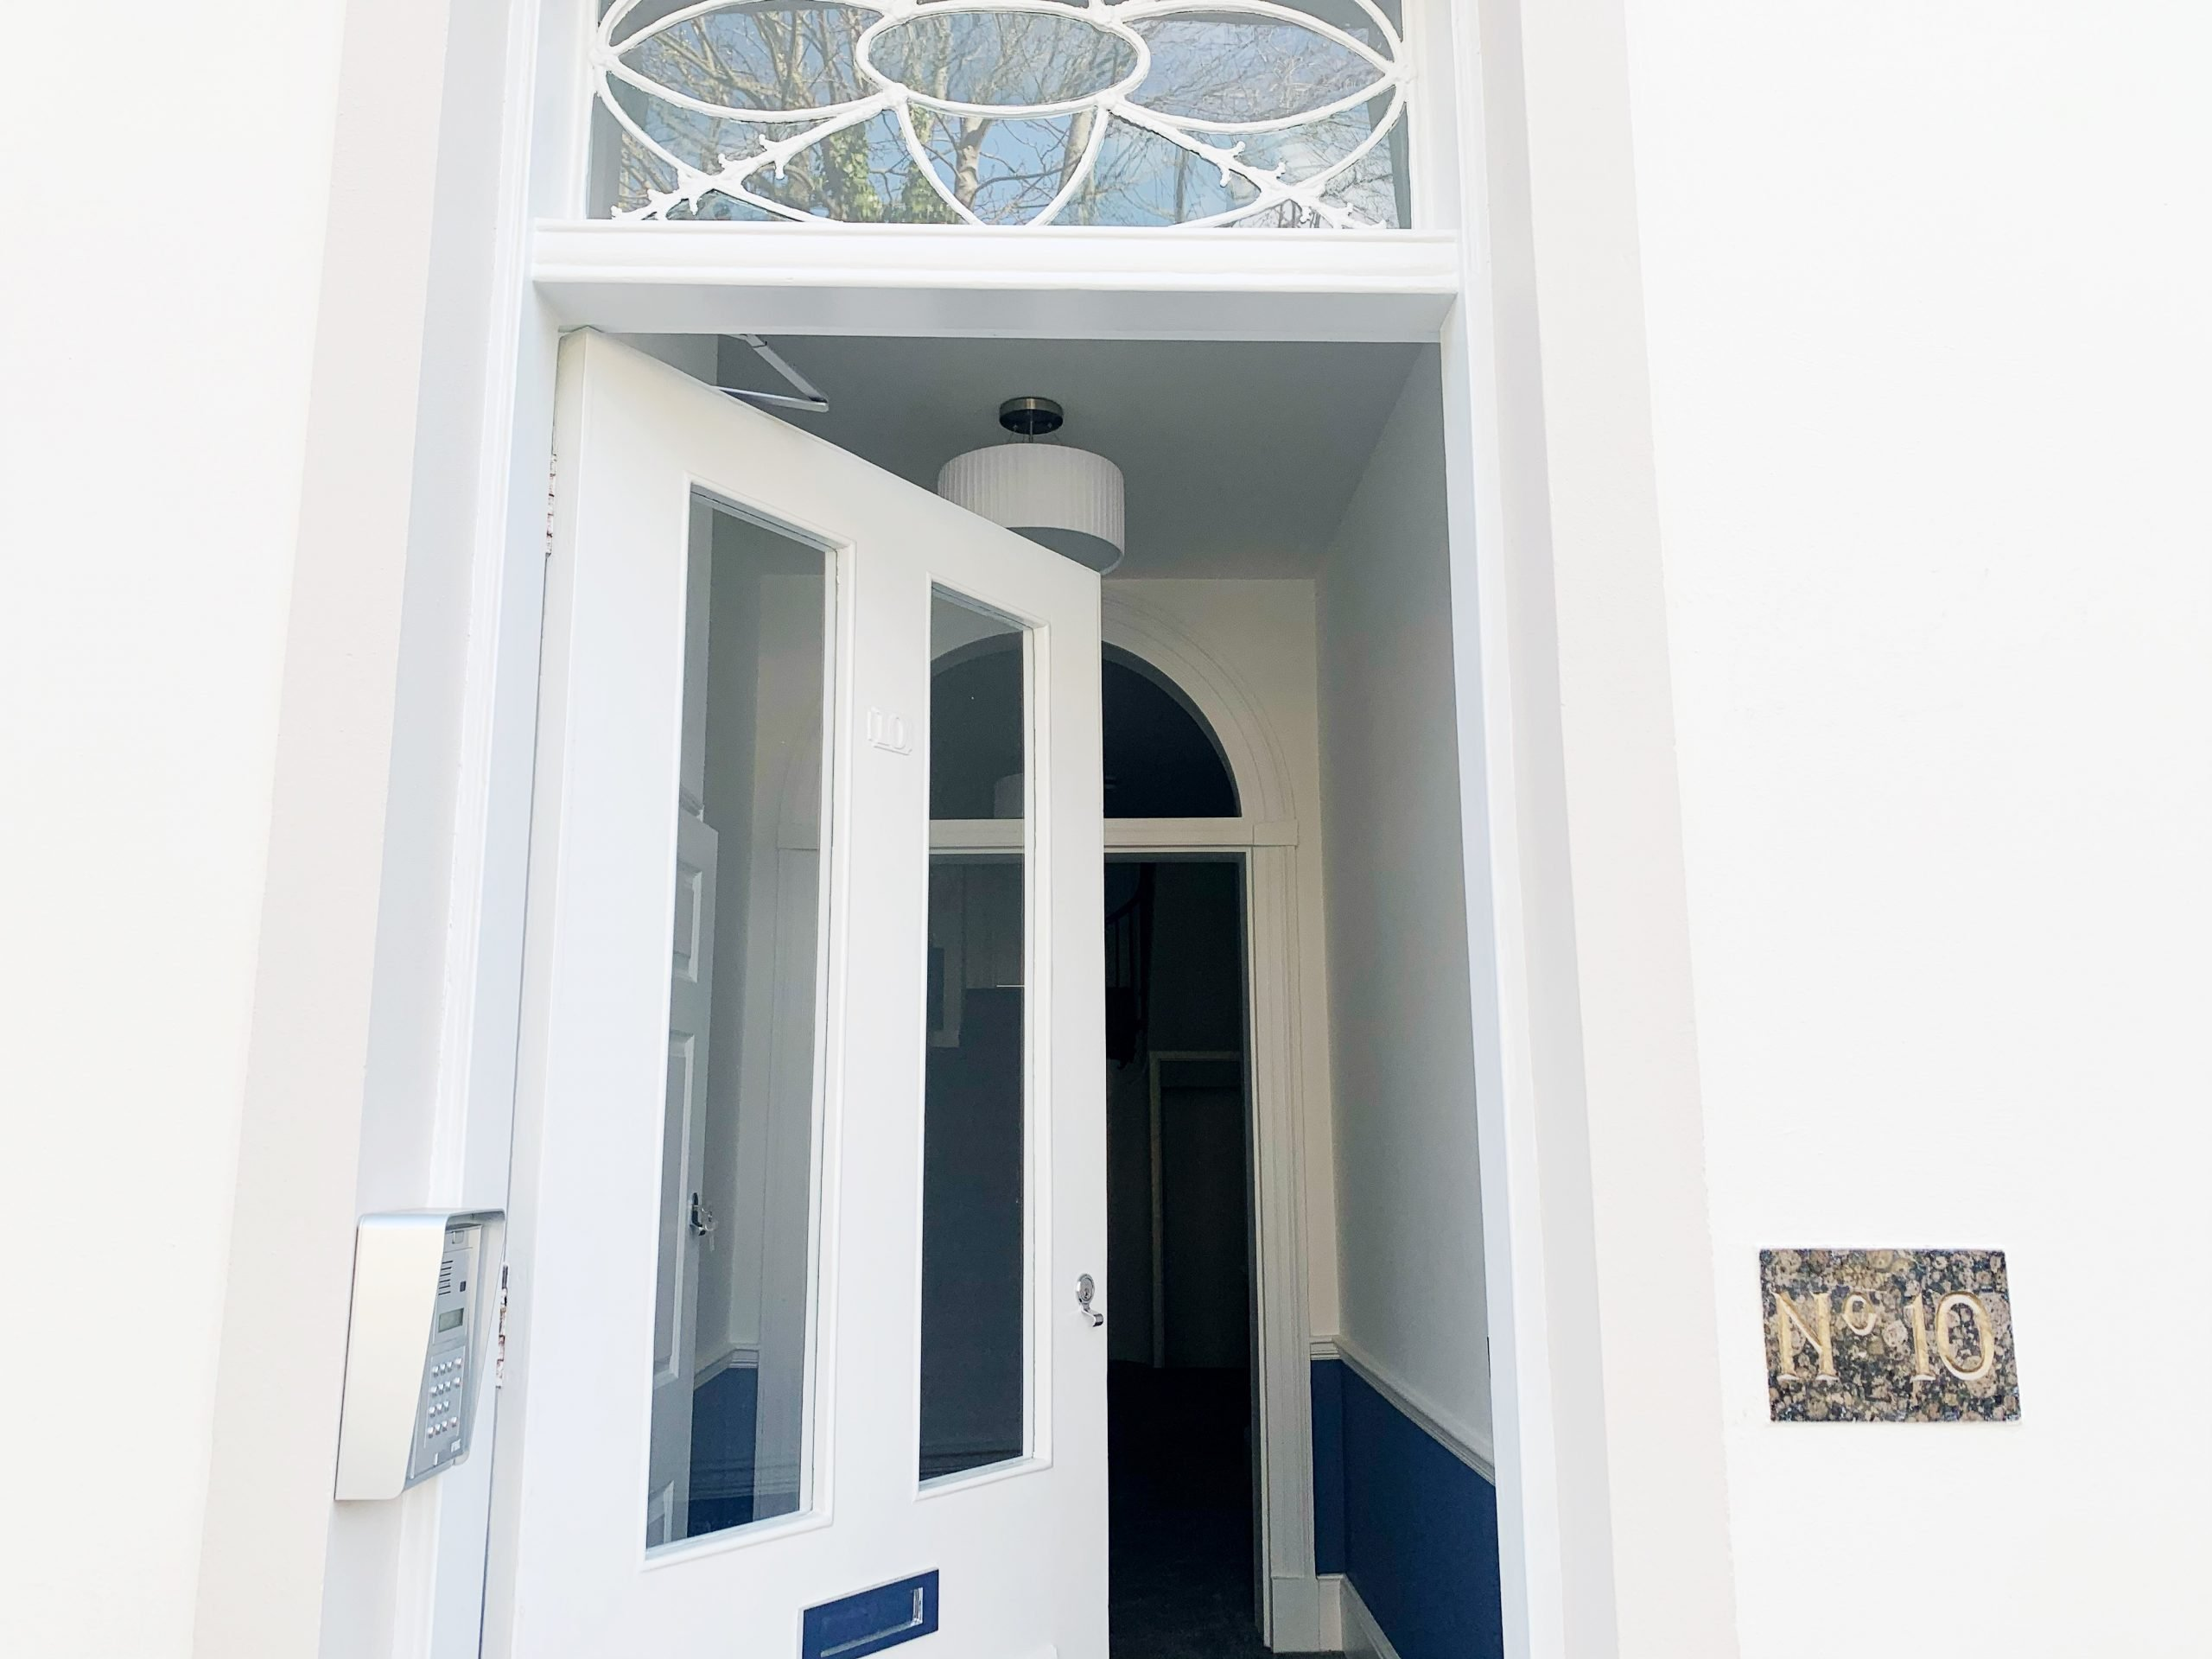 Immaculate 2 Bedroom Apartment Completely Renovated Through Out